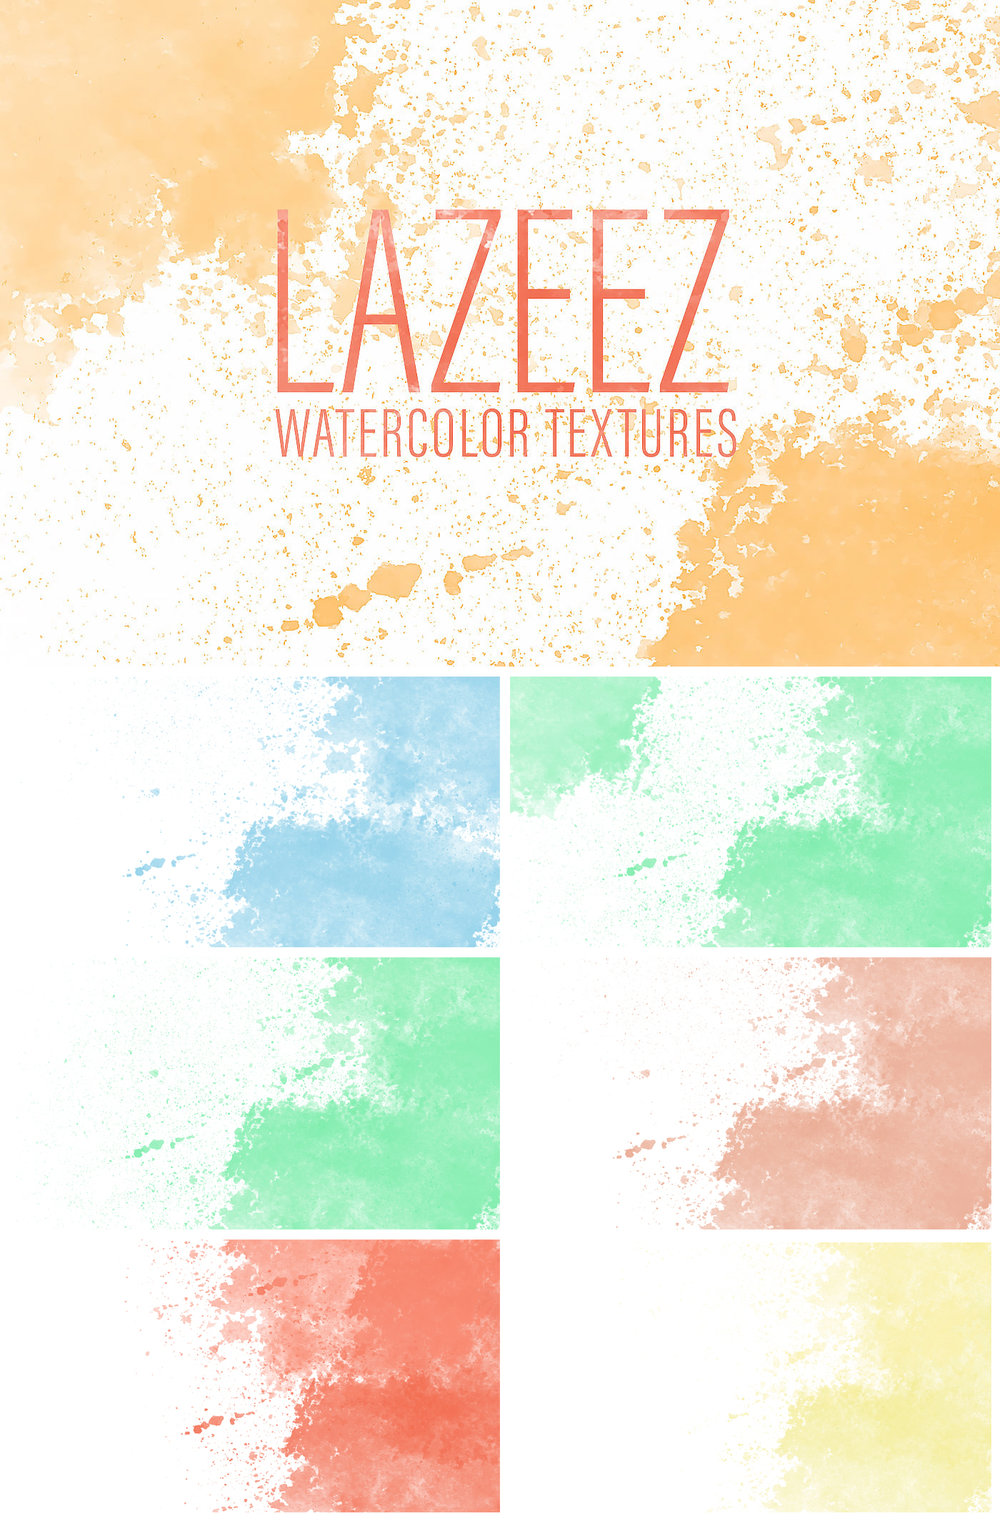 Lazeez#Watercolor #Textures #4K UDH  backgroundsare absolutely gentle and sophisticated textures for trendy,  feminine and elegant design lovers!